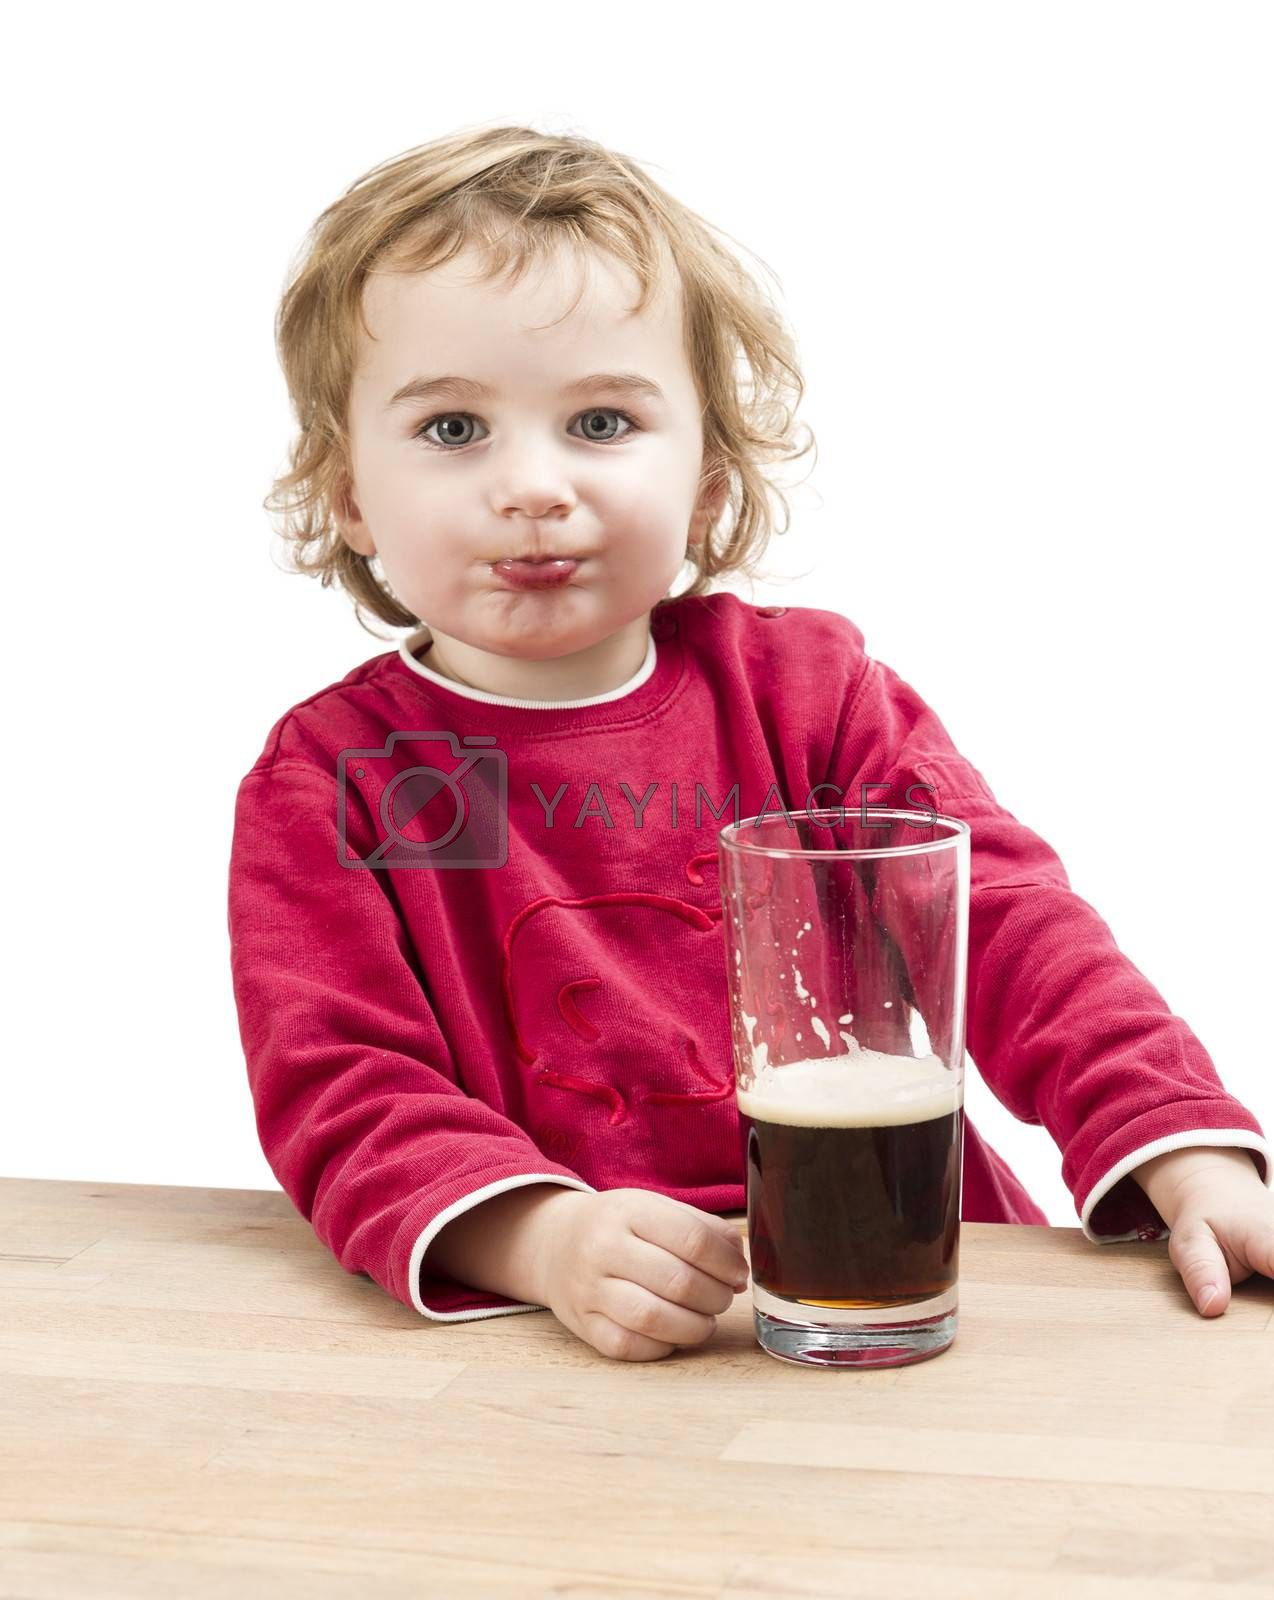 Royalty free image of young girl drinking beer by gewoldi